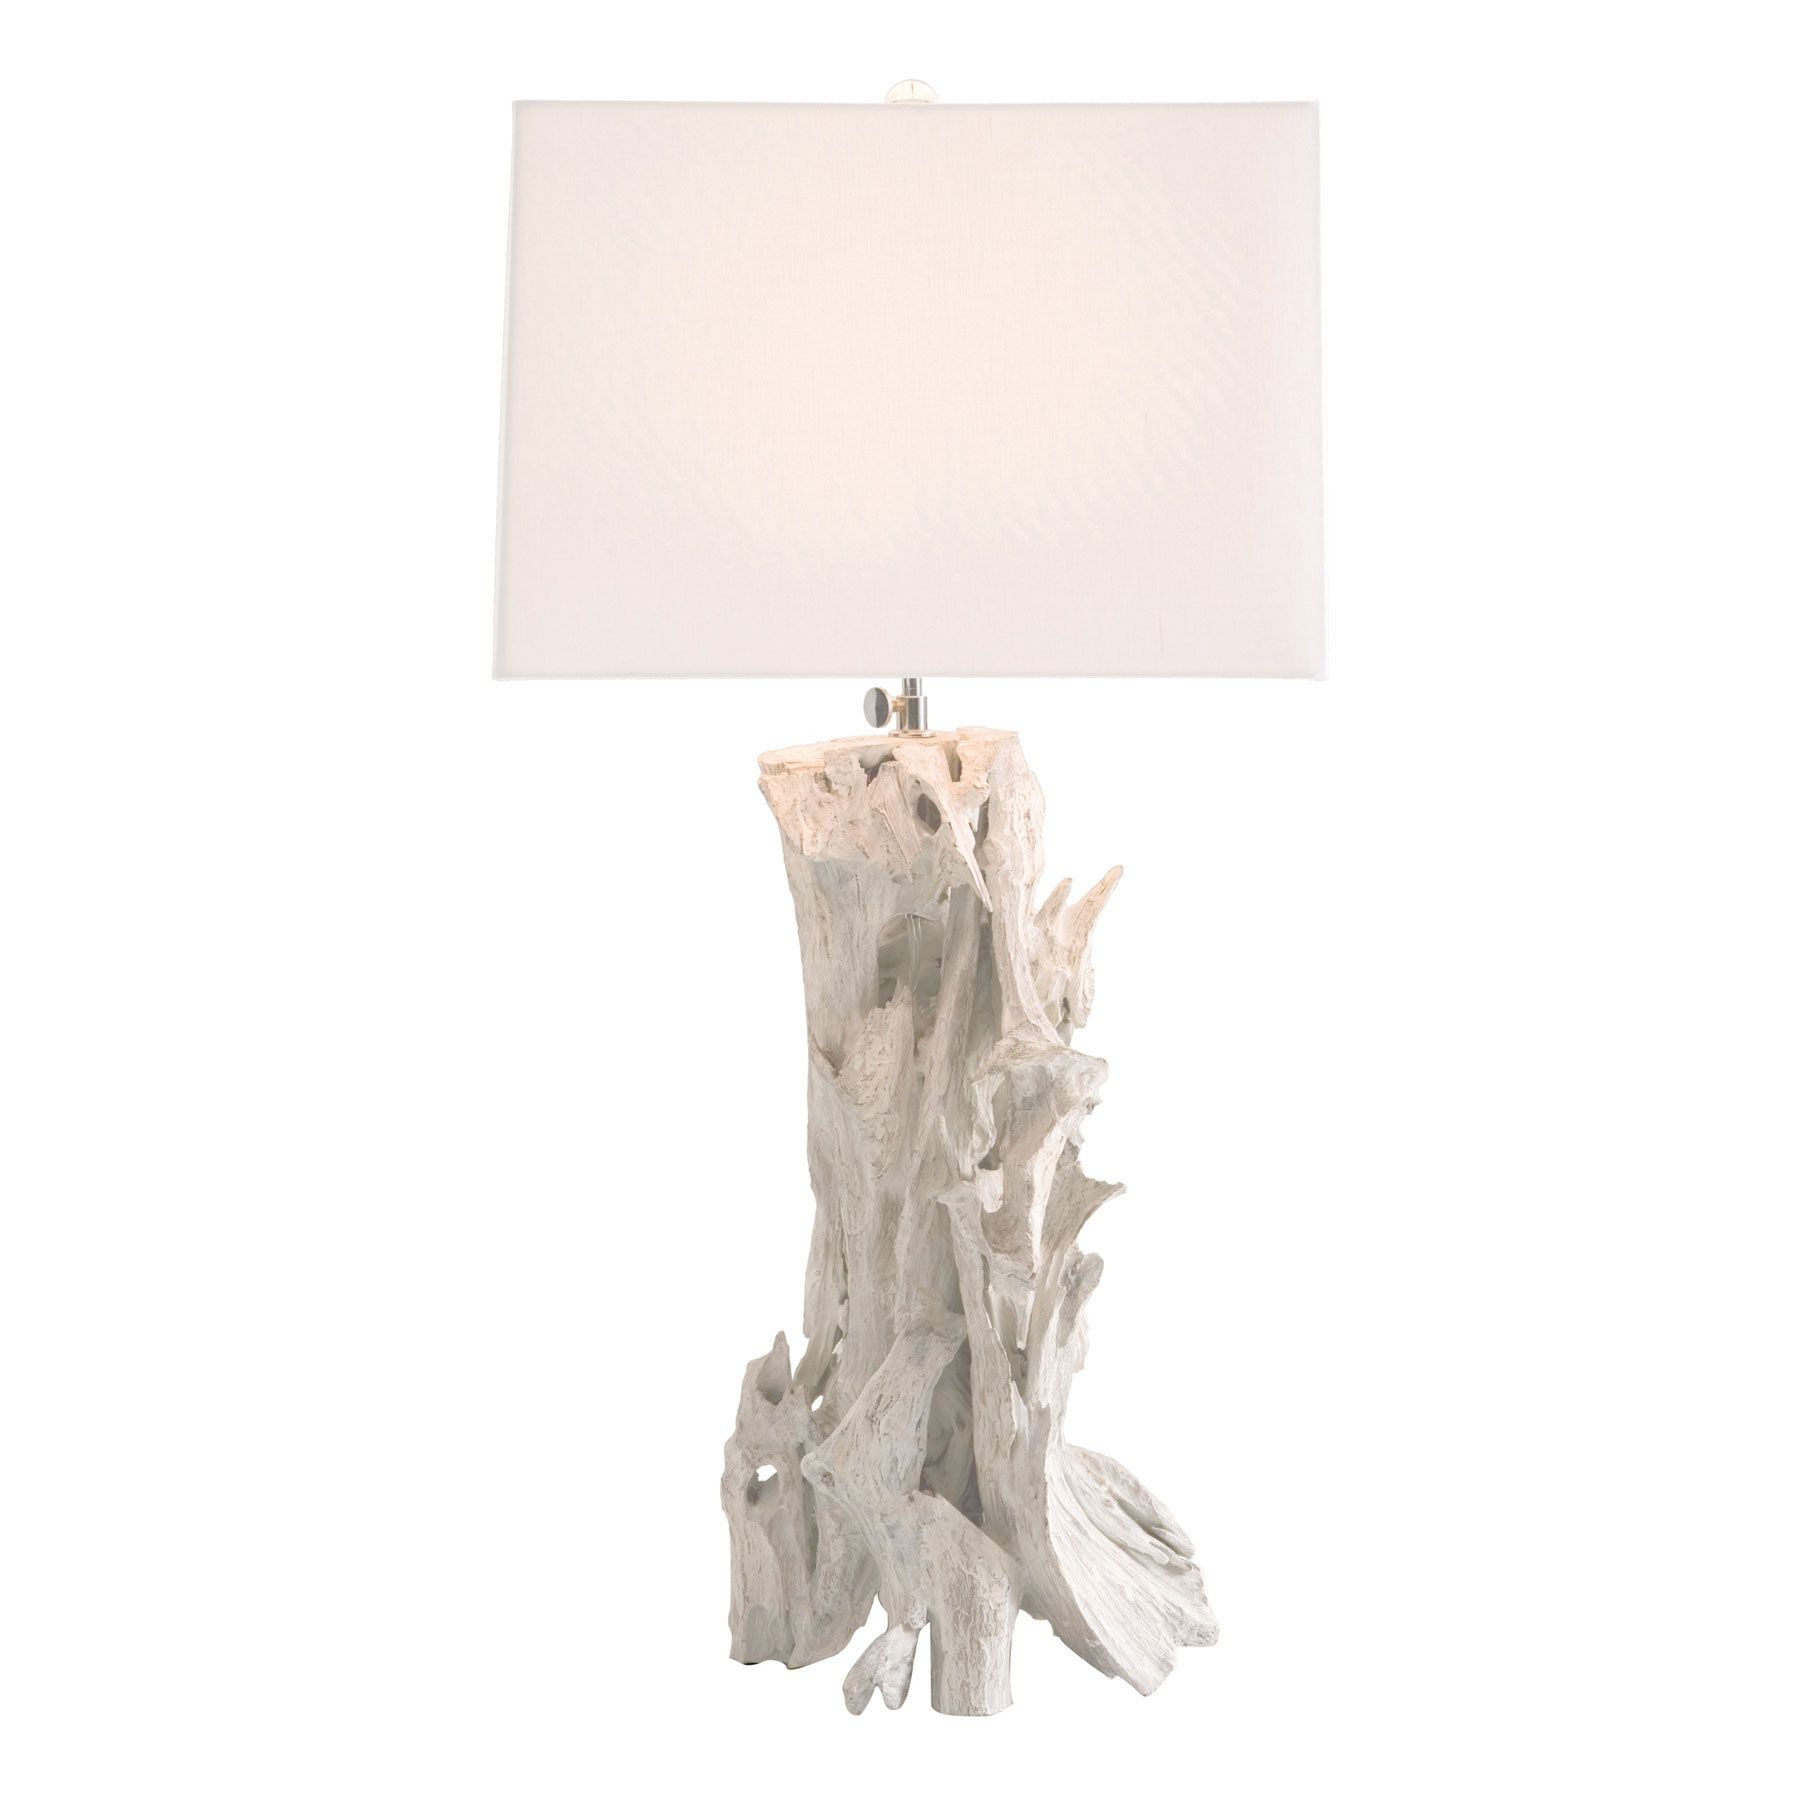 Bodega driftwood table lamp by arteriors home ah 15408 394 coastal decor bodega driftwood table lamp by arteriors home ah 15408 394 aloadofball Gallery